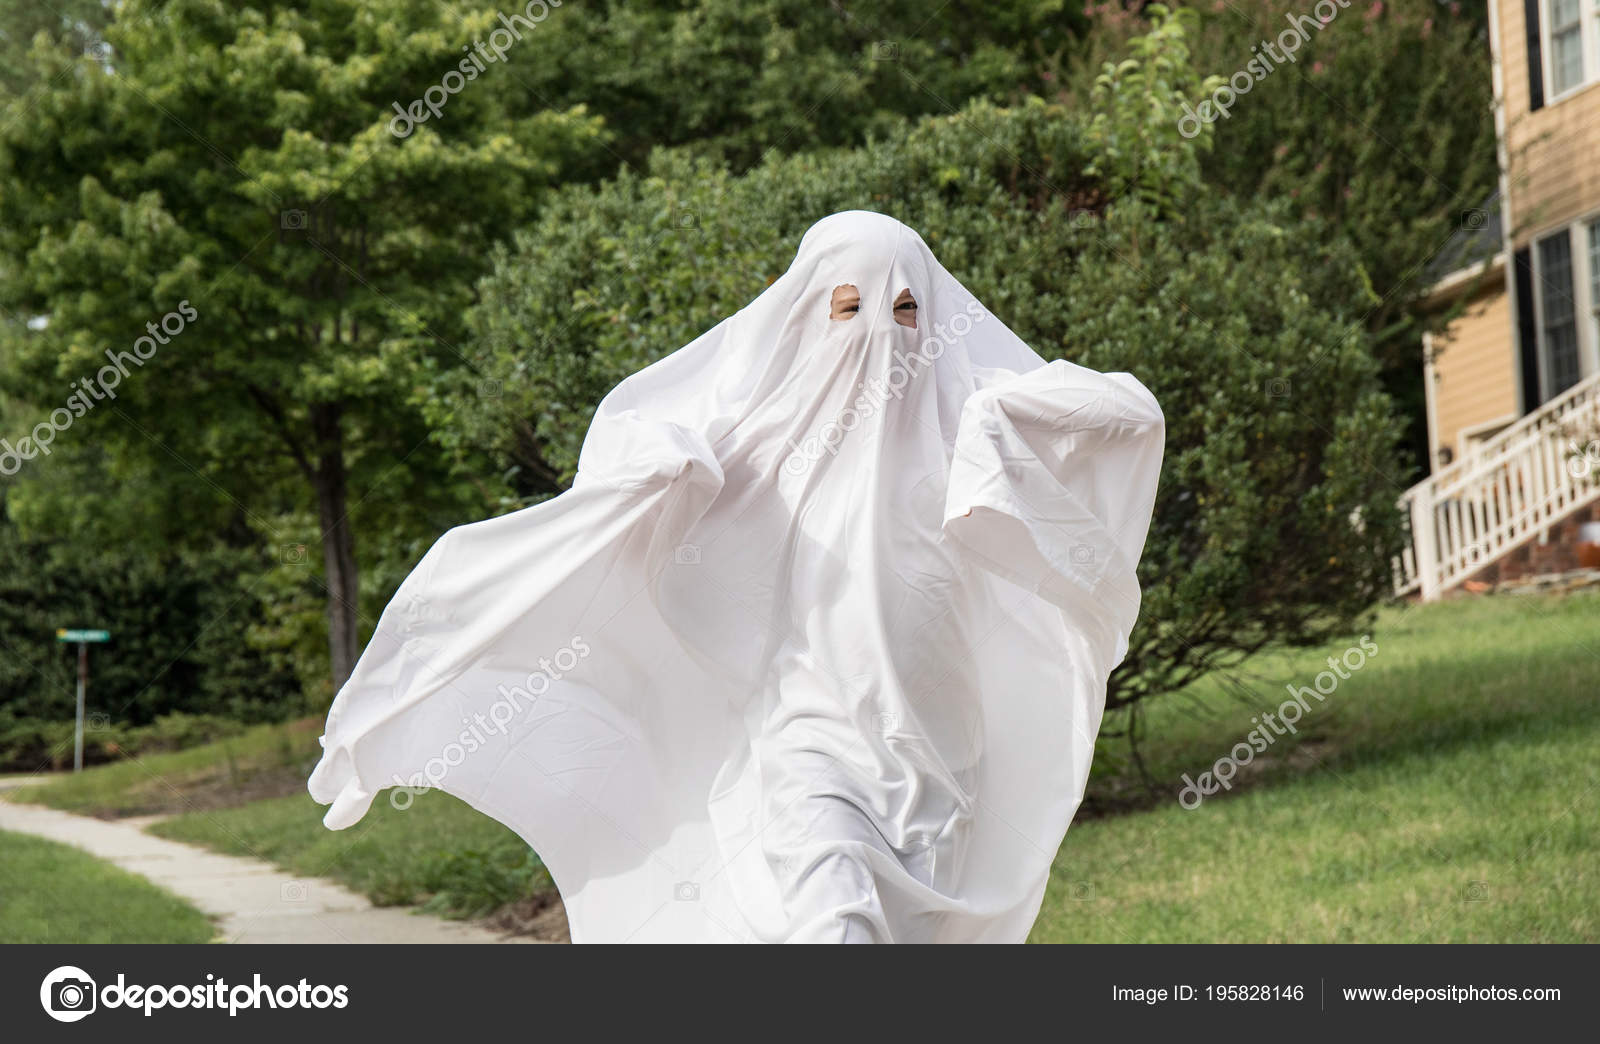 A child in a ghost costume made out of a bedsheet running down the sidewalk. u2014 Photo by LineWeight & Child Ghost Costume Made Out Bedsheet Running Sidewalk u2014 Stock Photo ...